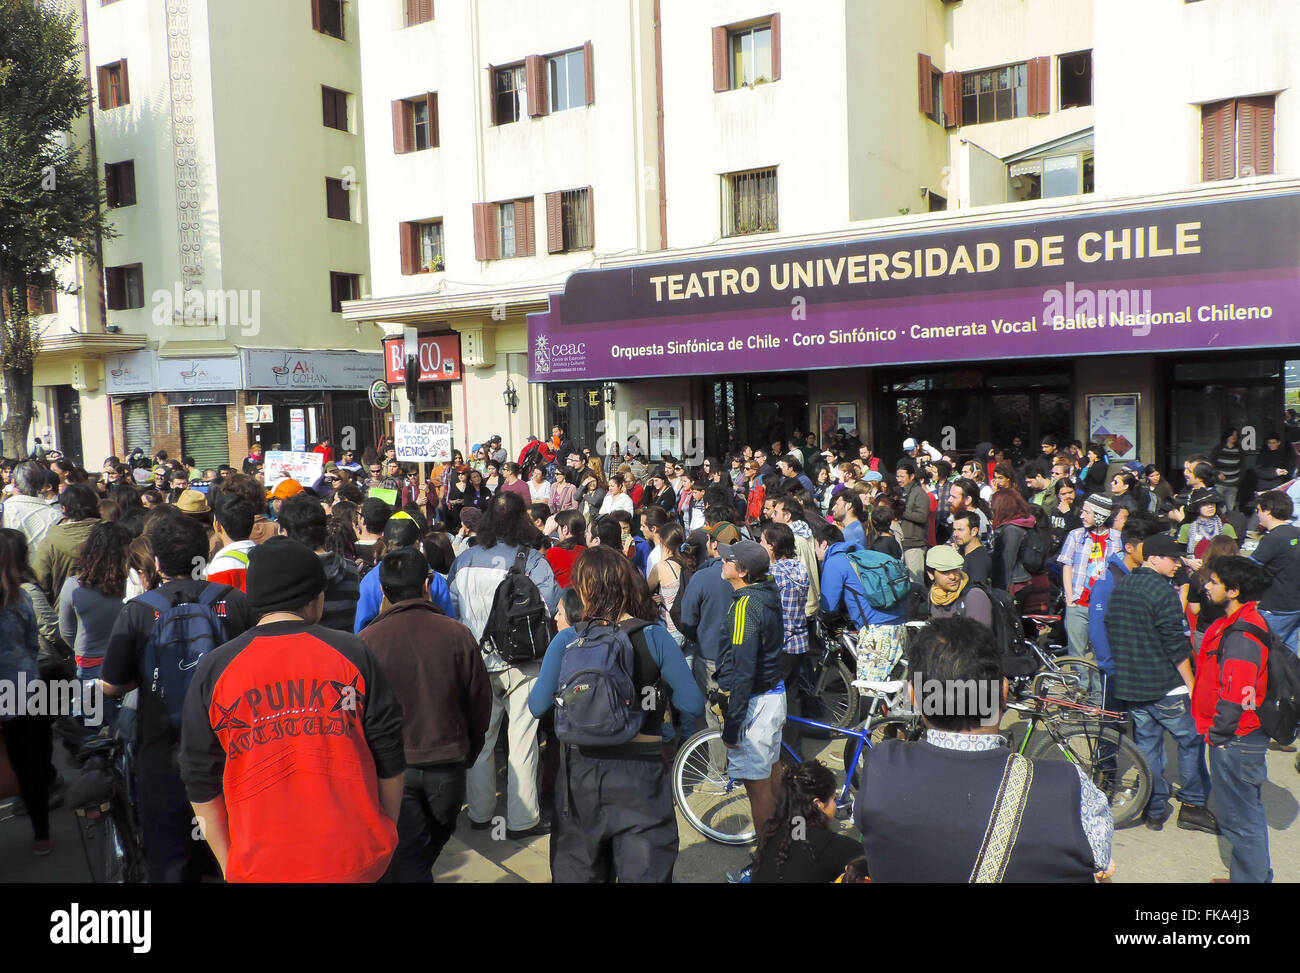 Demonstration against Monsanto transgenic seed and in front of the theater of the Universidad de Chile - Stock Image